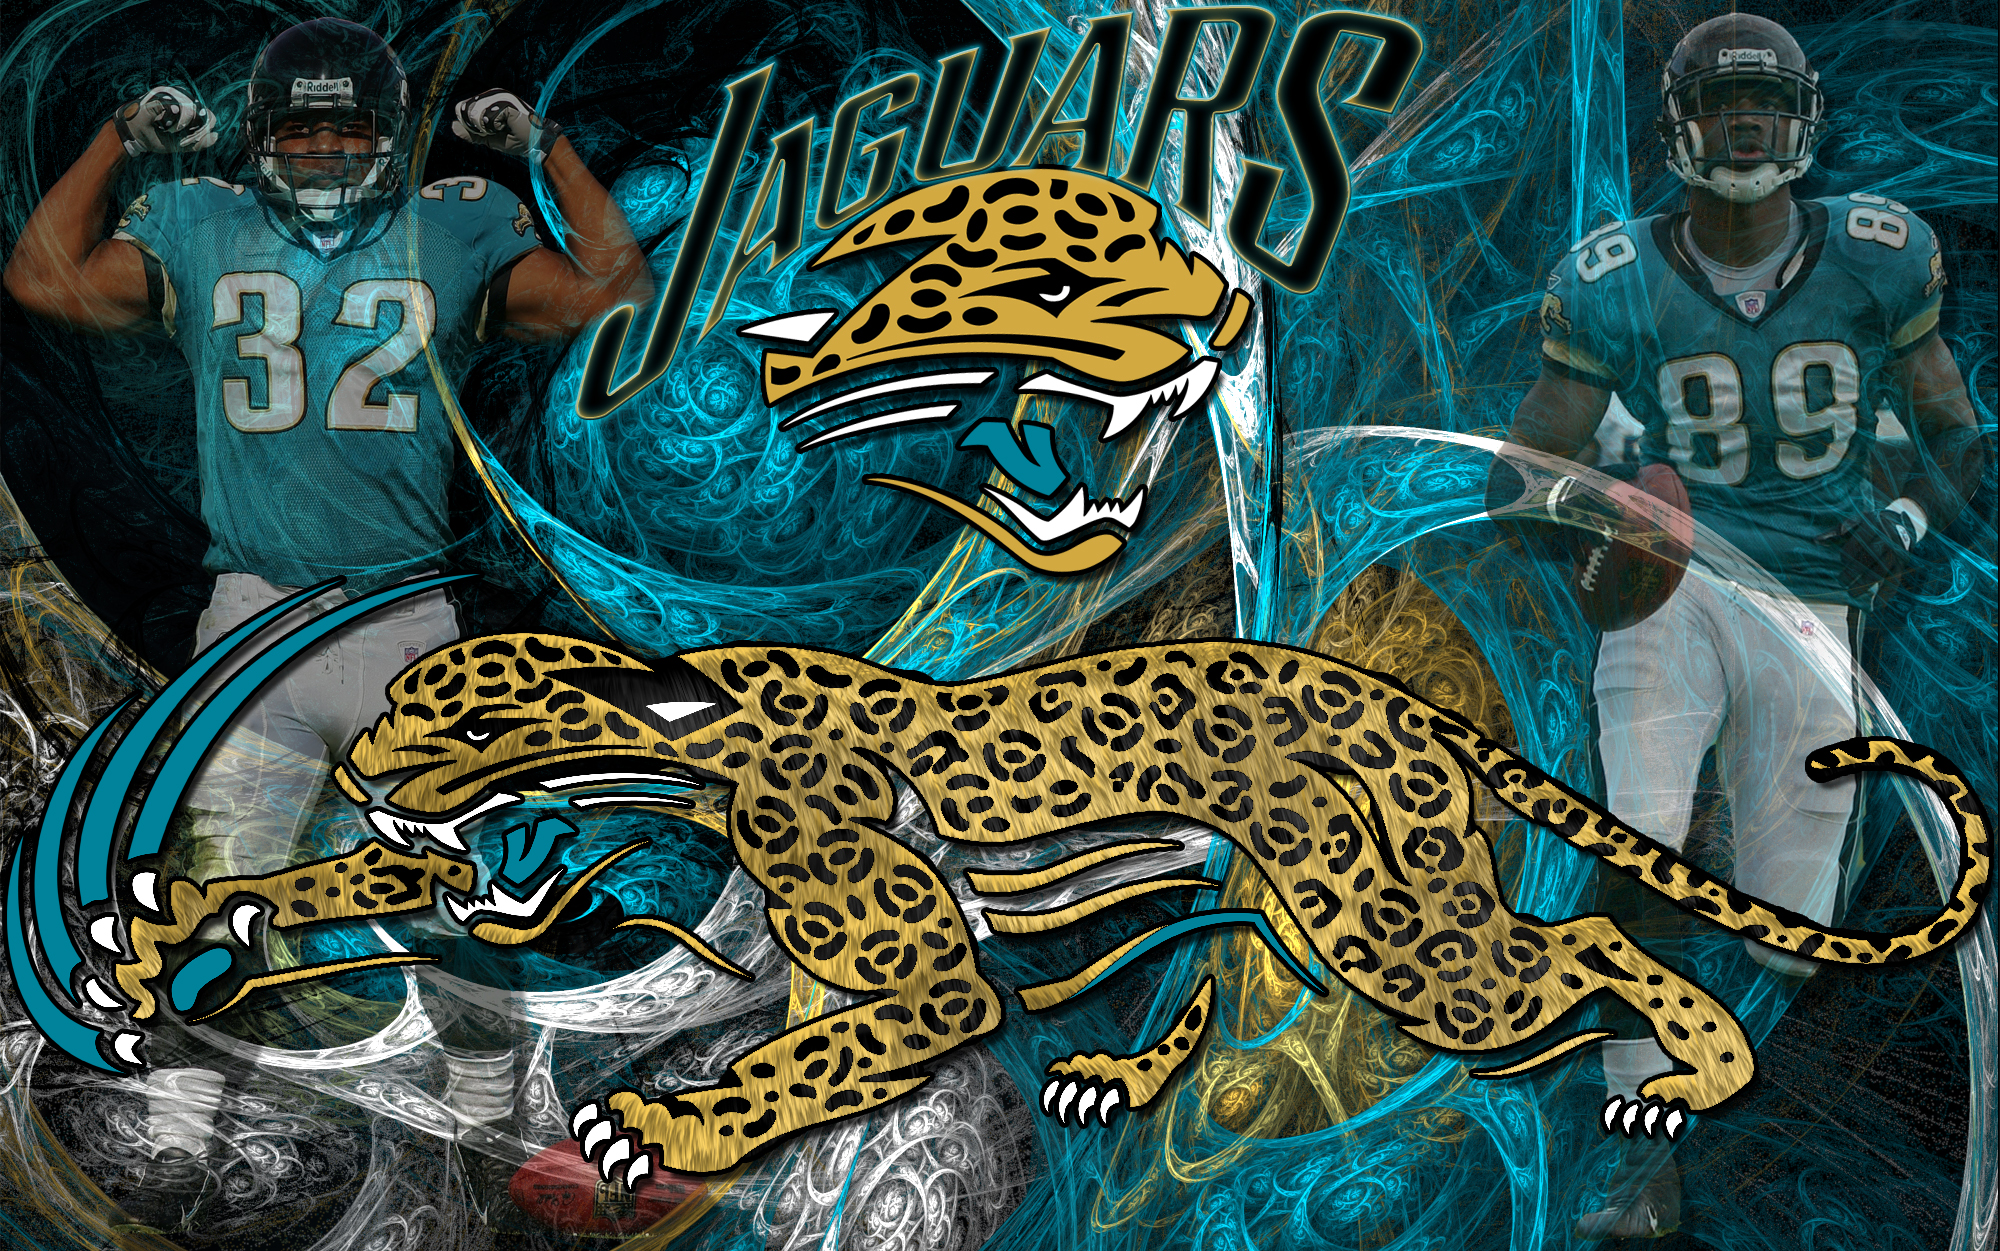 jacksonville jaguars new logo wallpapers - photo #28